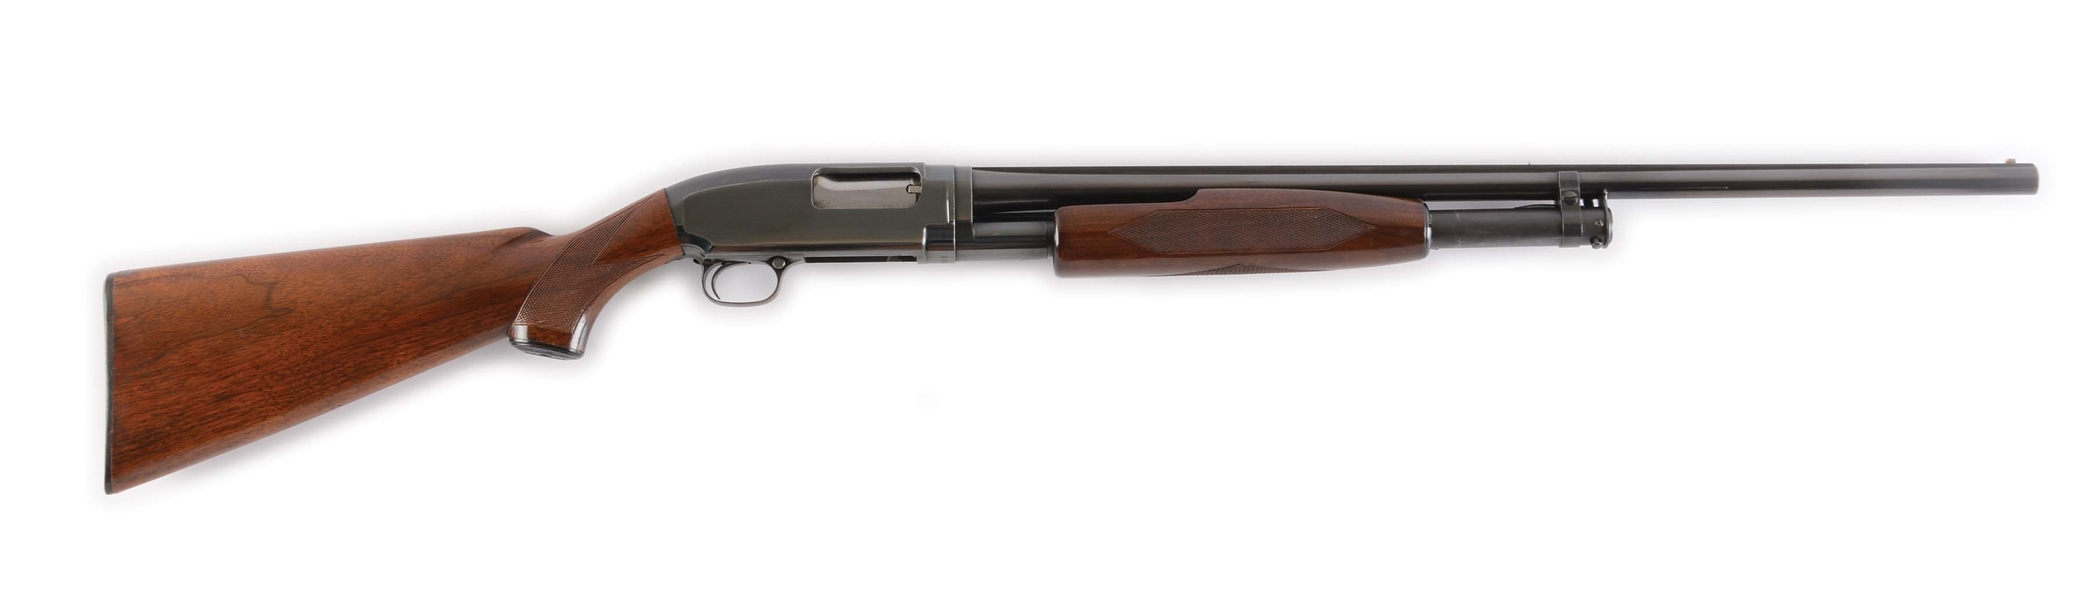 (C) SCARCE HIGH ORIGINAL CONDITION WINCHESTER MODEL 12 28 GAUGE SKEET SHOTGUN WITH MATTED RIB